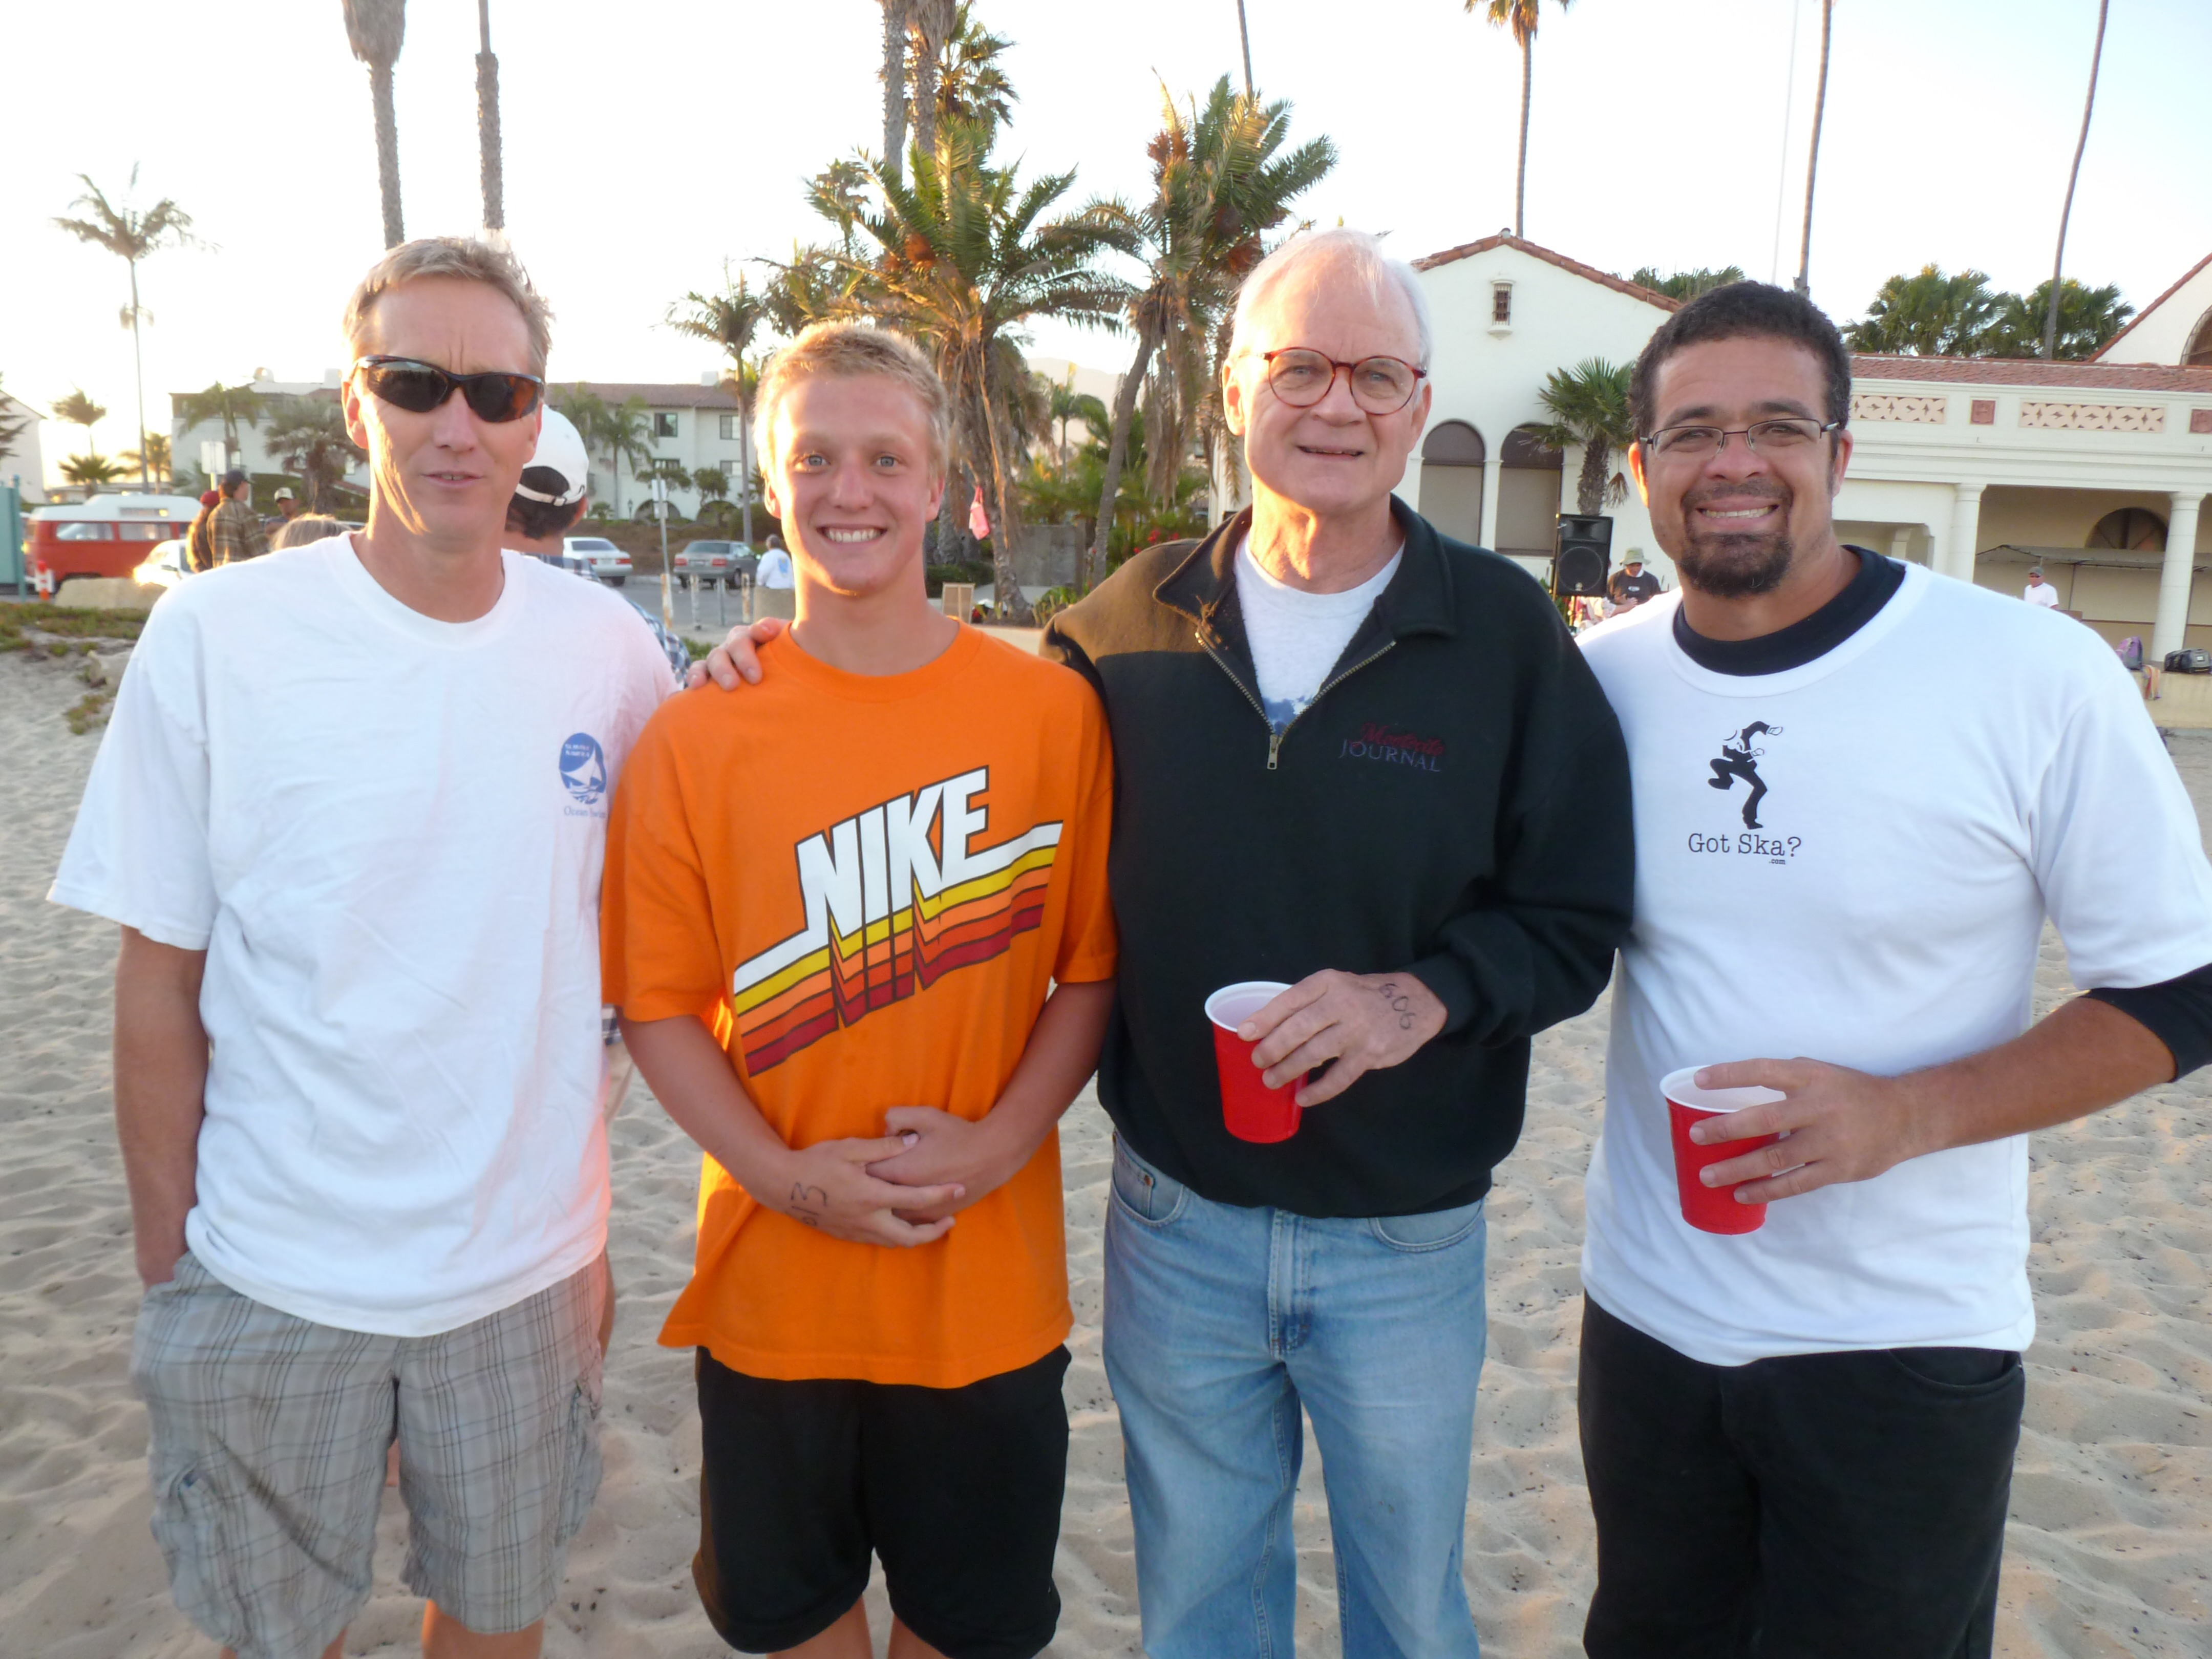 Reef & Run ocean-swim winners Jon Clark (mile), Grant Schroeder (1k) hang out with 1960 Olympic gold medalist Jeff Farrell and his son, Marco, at East Beach.